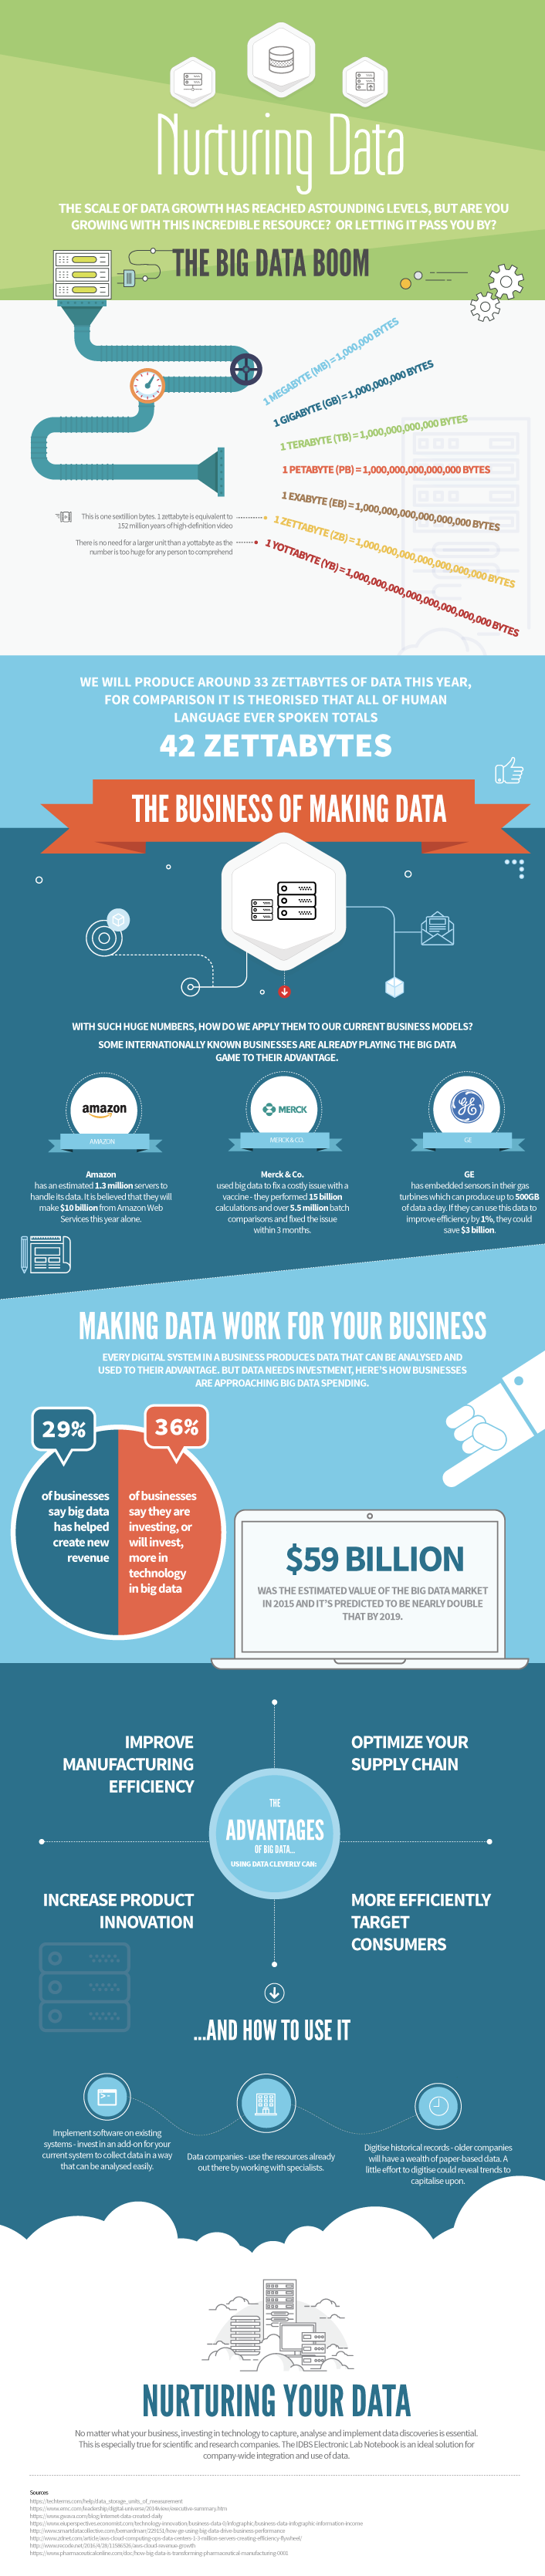 Big Data and Small Business - IDBS Infographic